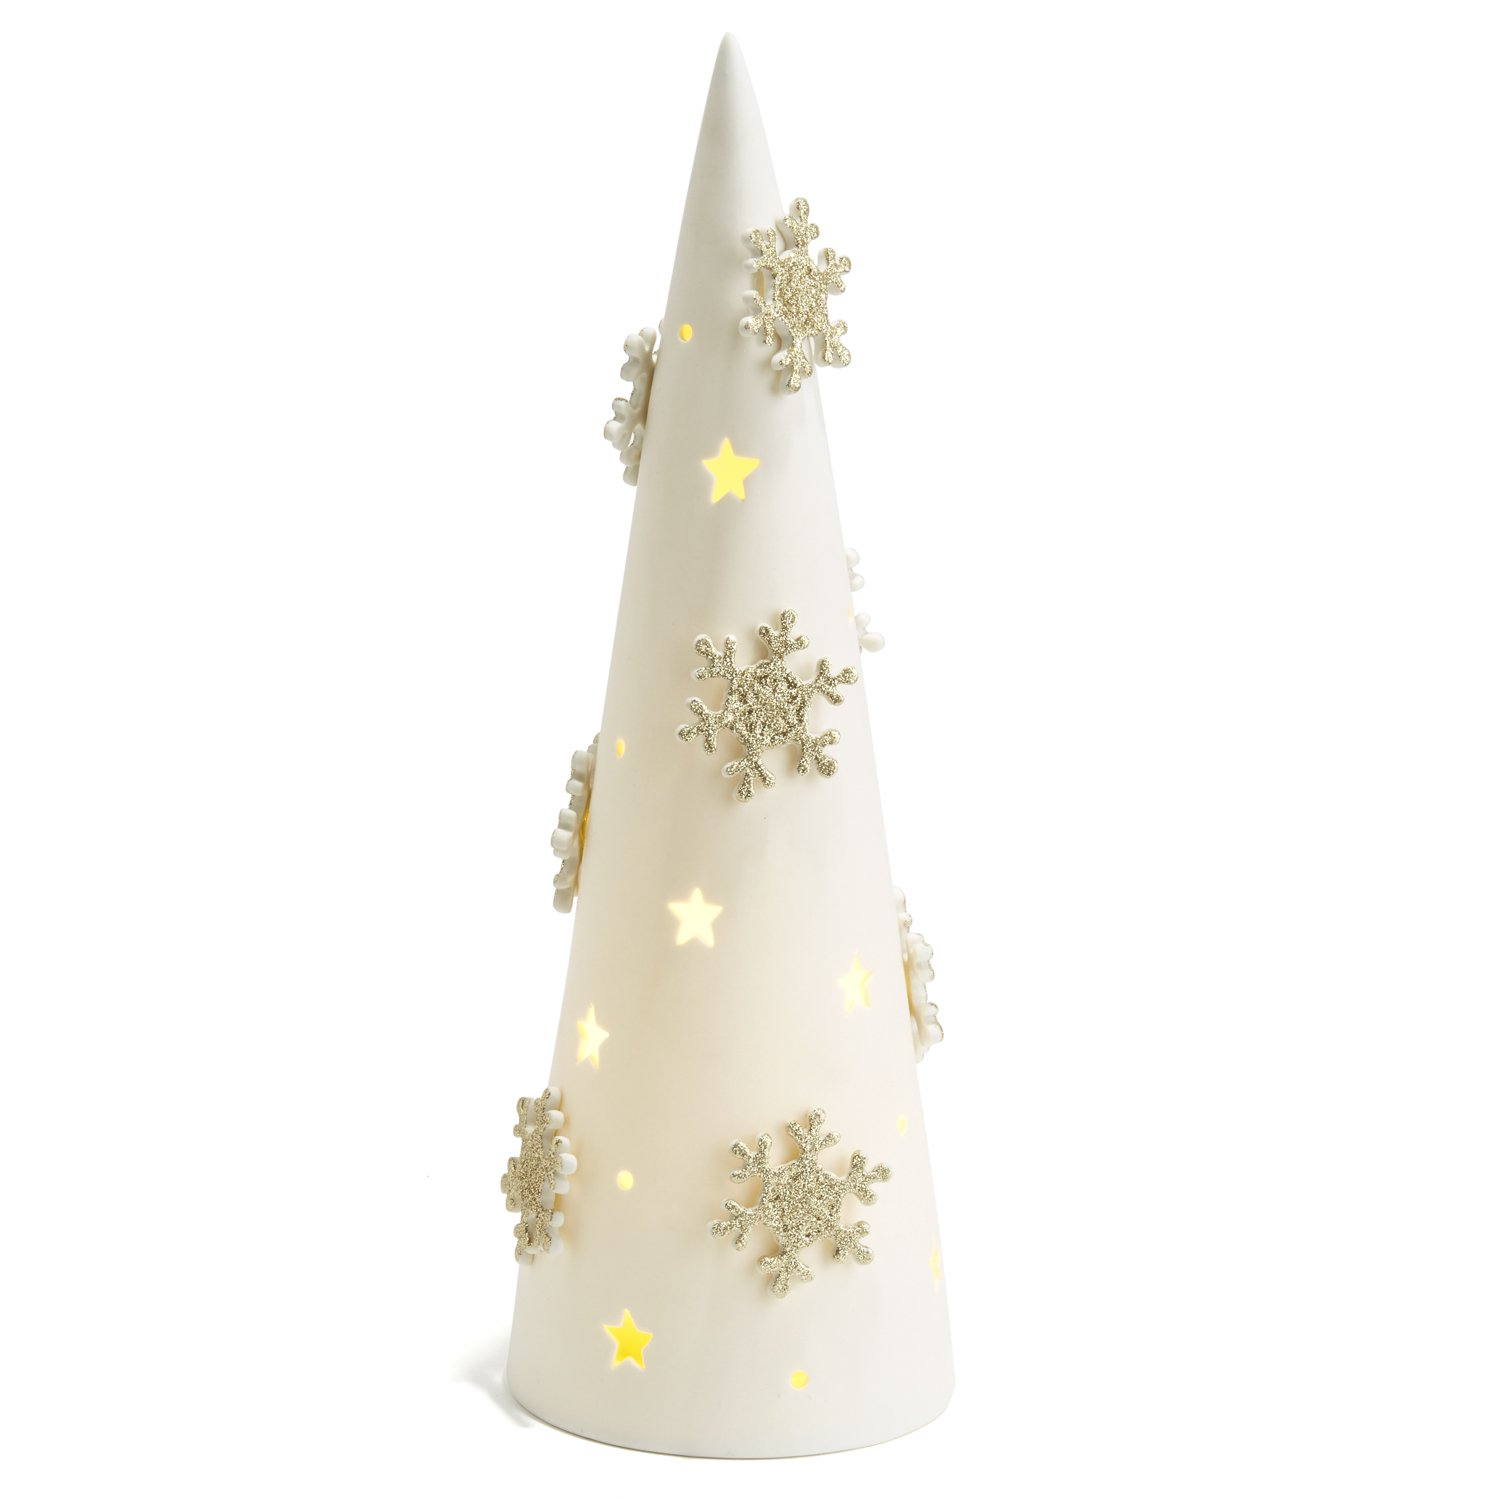 LampLust Lighted Tabletop Porcelain Tree, Warm White LED Light, White Base, Gold Snowflakes, Timer Option, Battery Operated